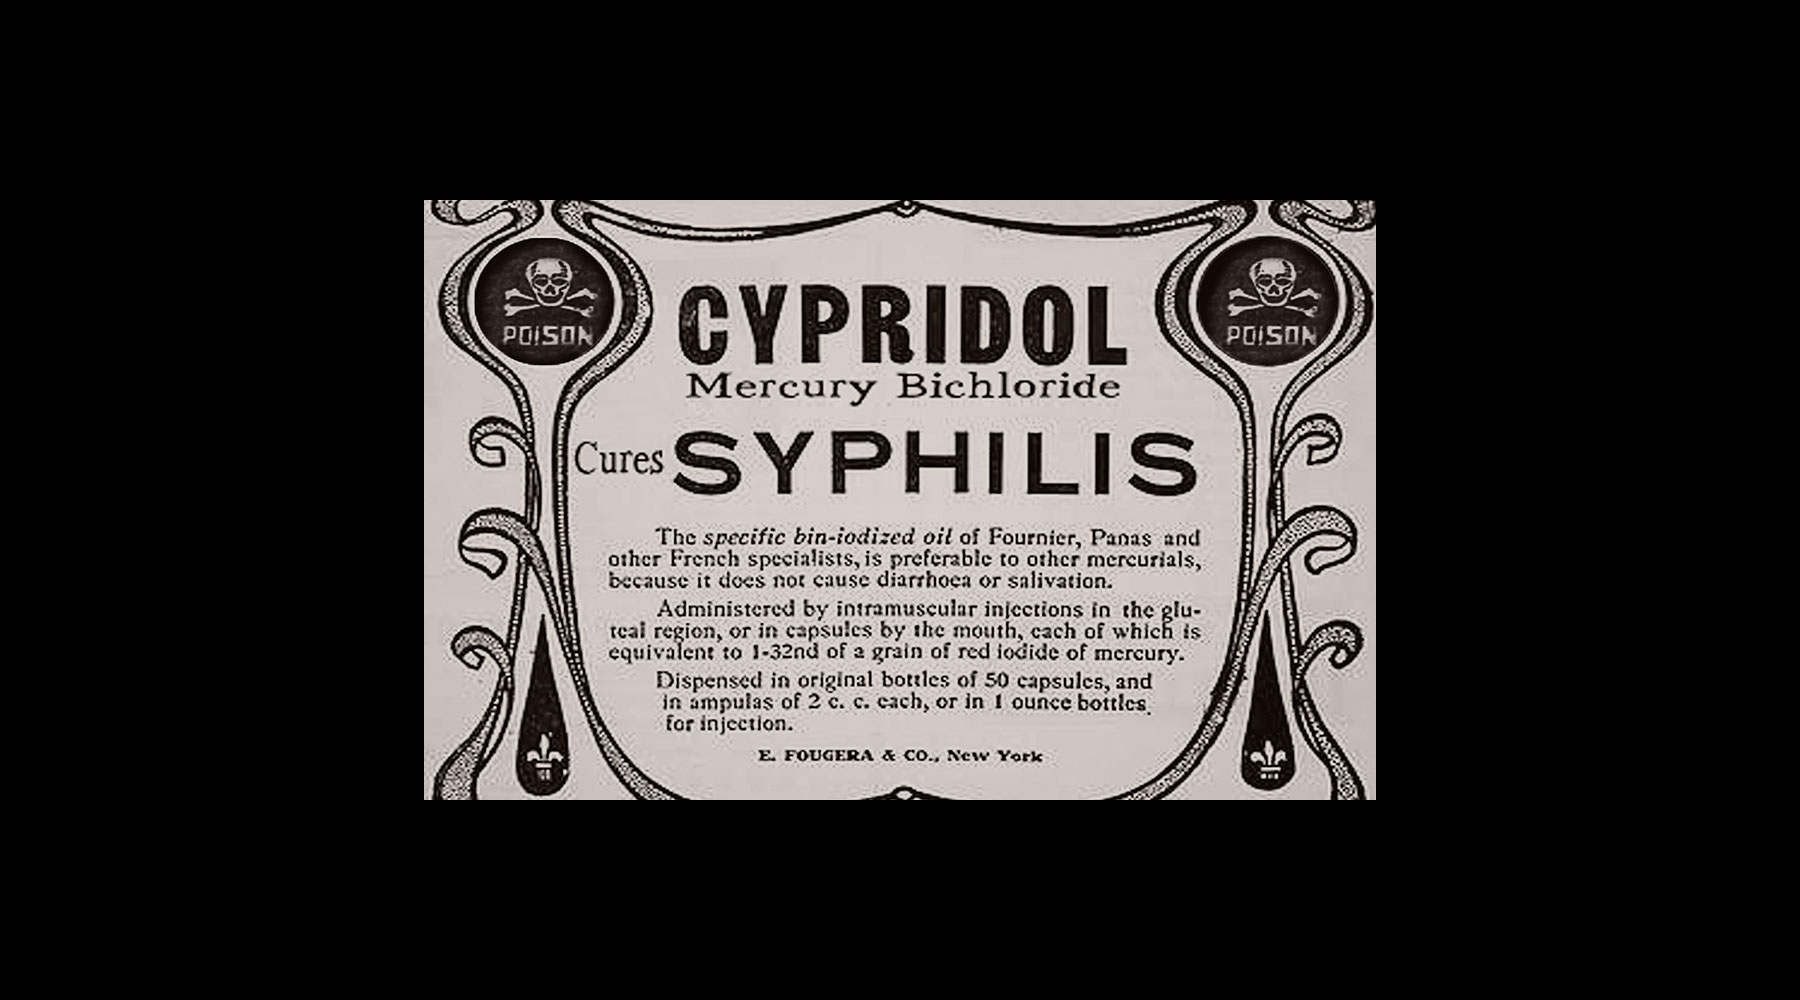 Mercury bichloride was used to treat syphilis. It was also used as a cleaning solution.